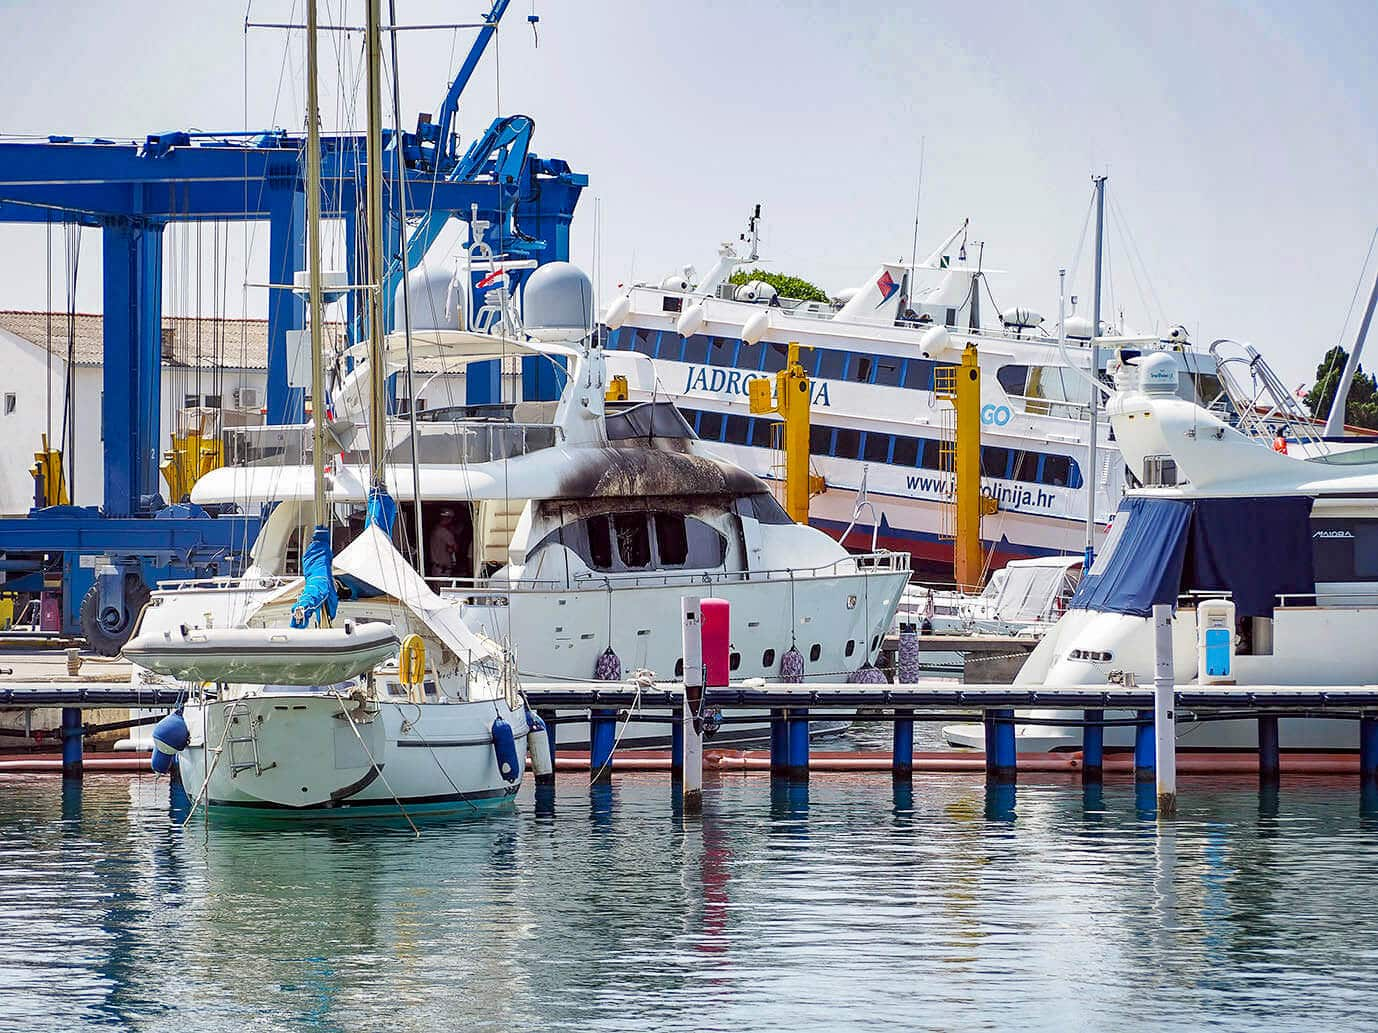 Damage woth millions: Maiora yacht goes up in flames in Marina Punat